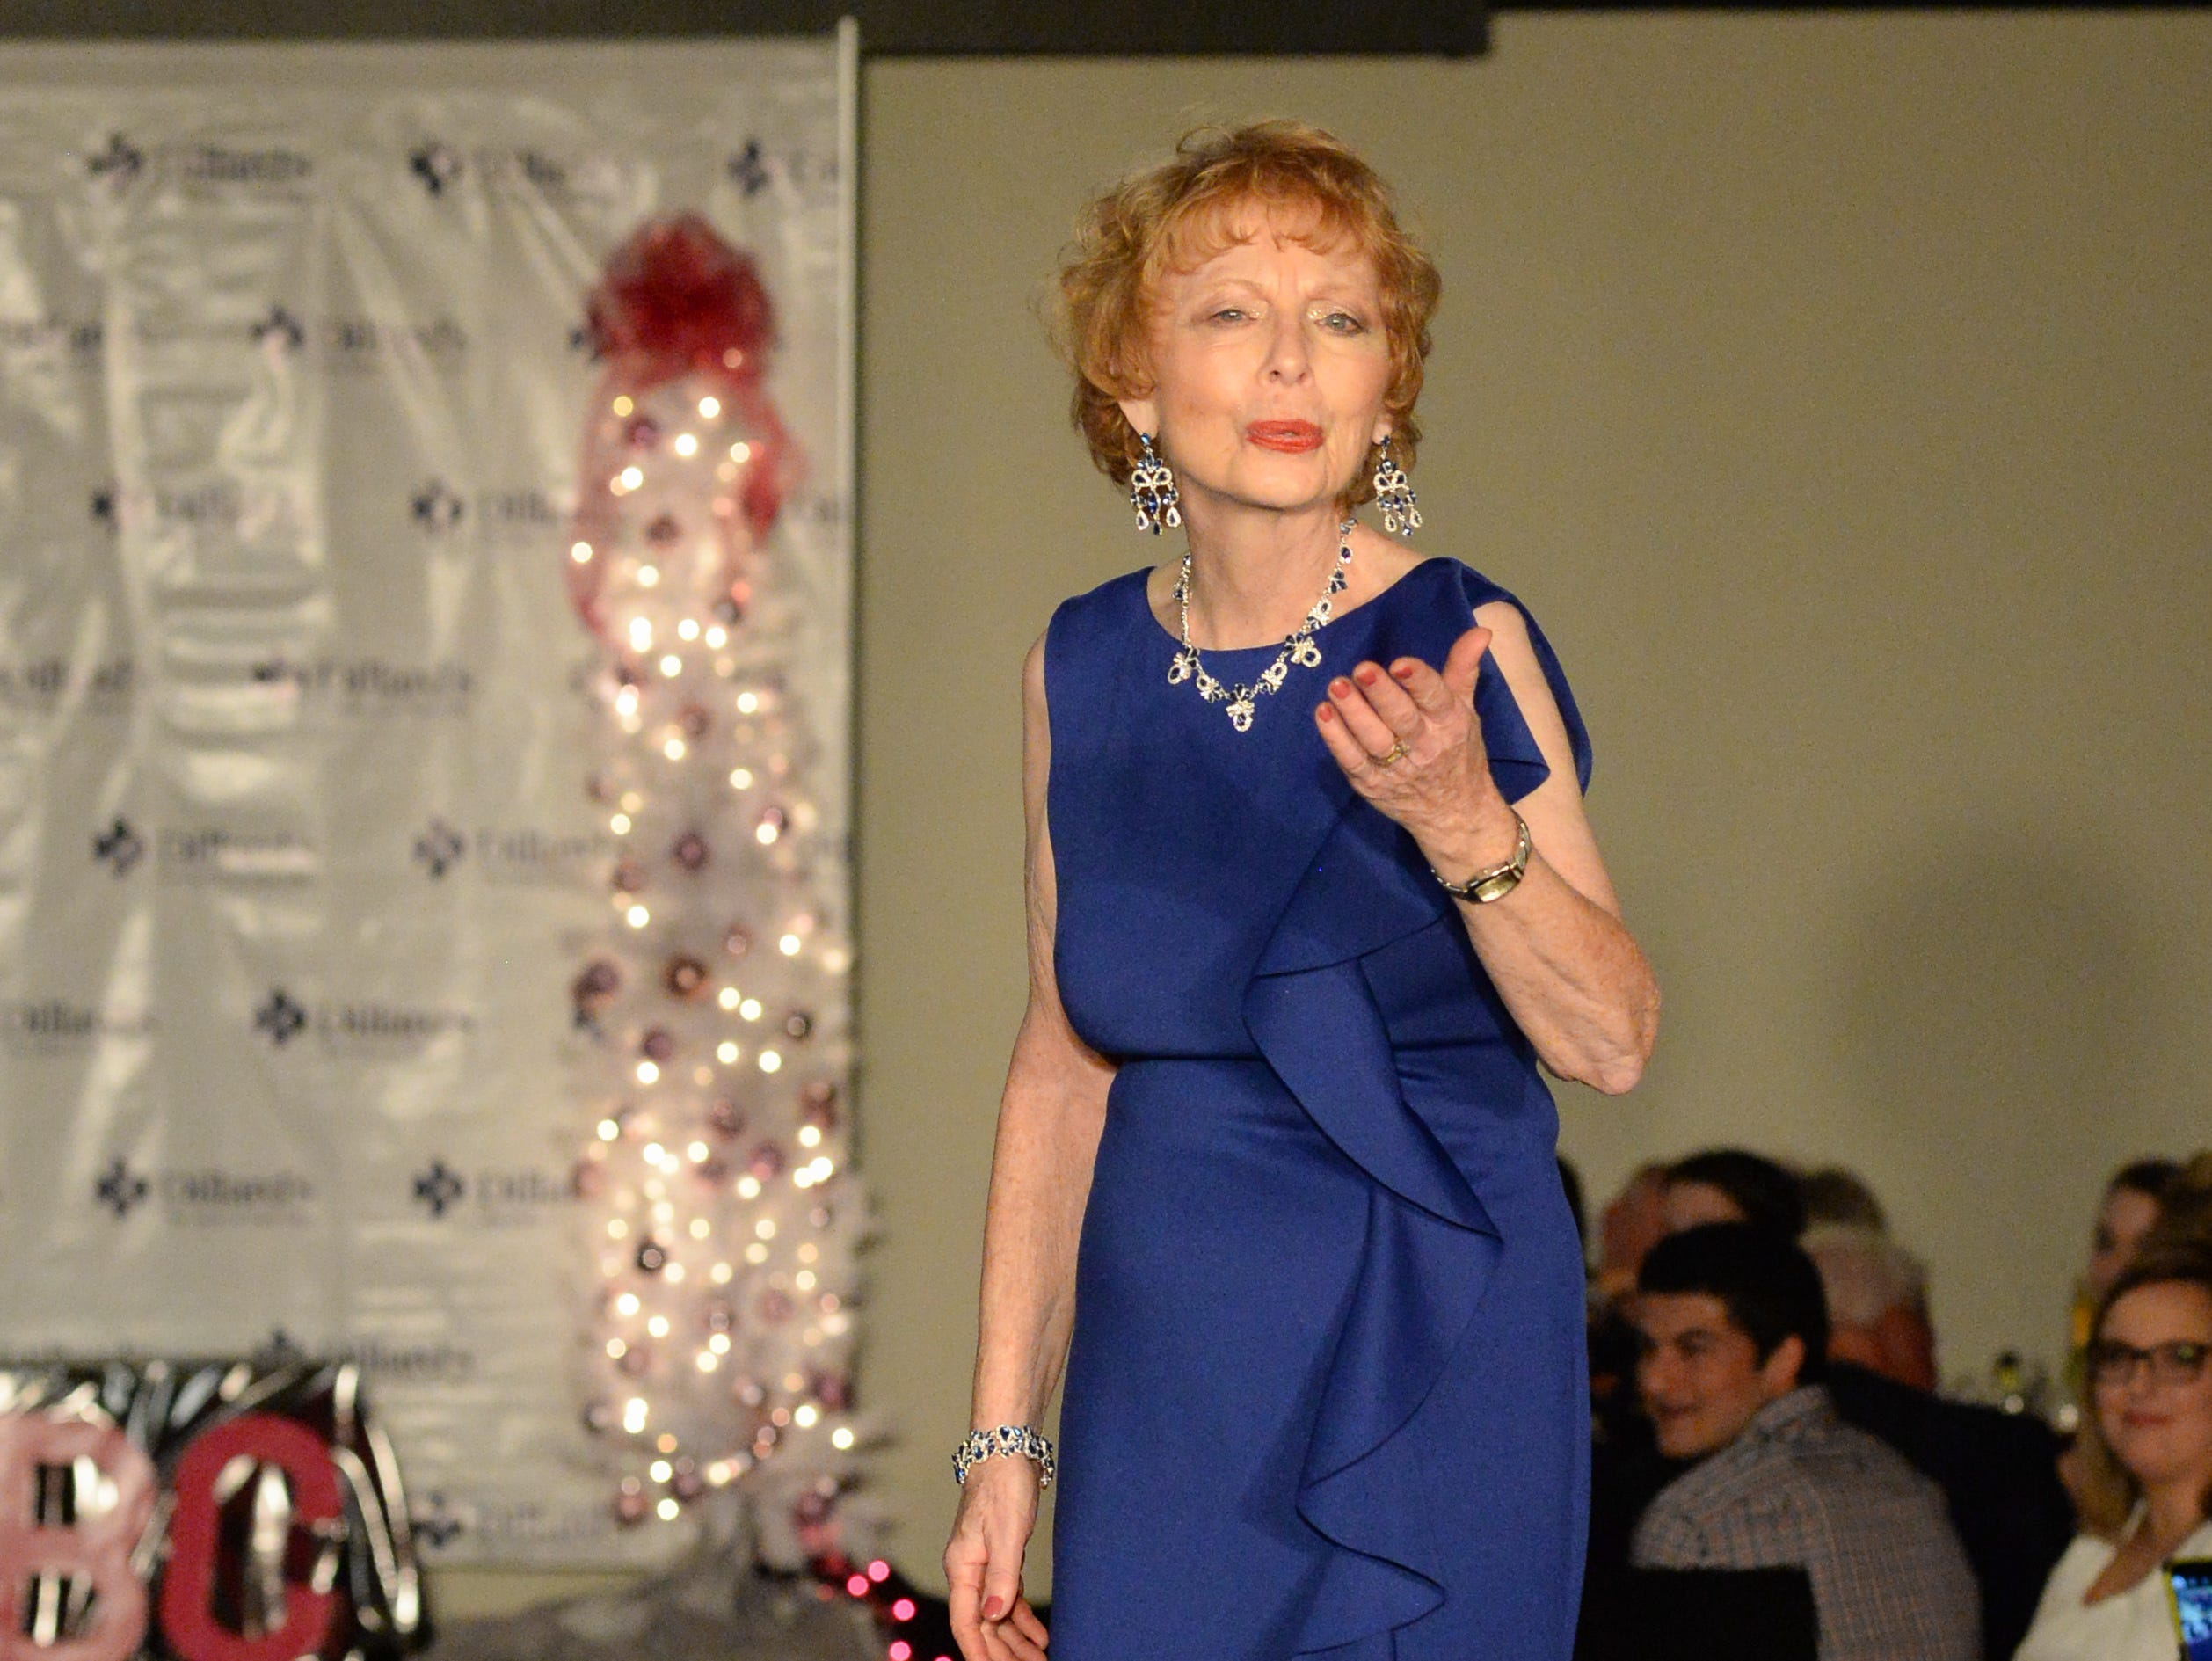 Participants enjoy the Garlands & Glitter Fashion Show by Dillard's presented by Hendersonville HolidayFest at Bluegrass Yacht and Country Club in Hendersonville on Saturday, Nov. 3. The event was to benefit the YMCA After Breast Cancer Program.